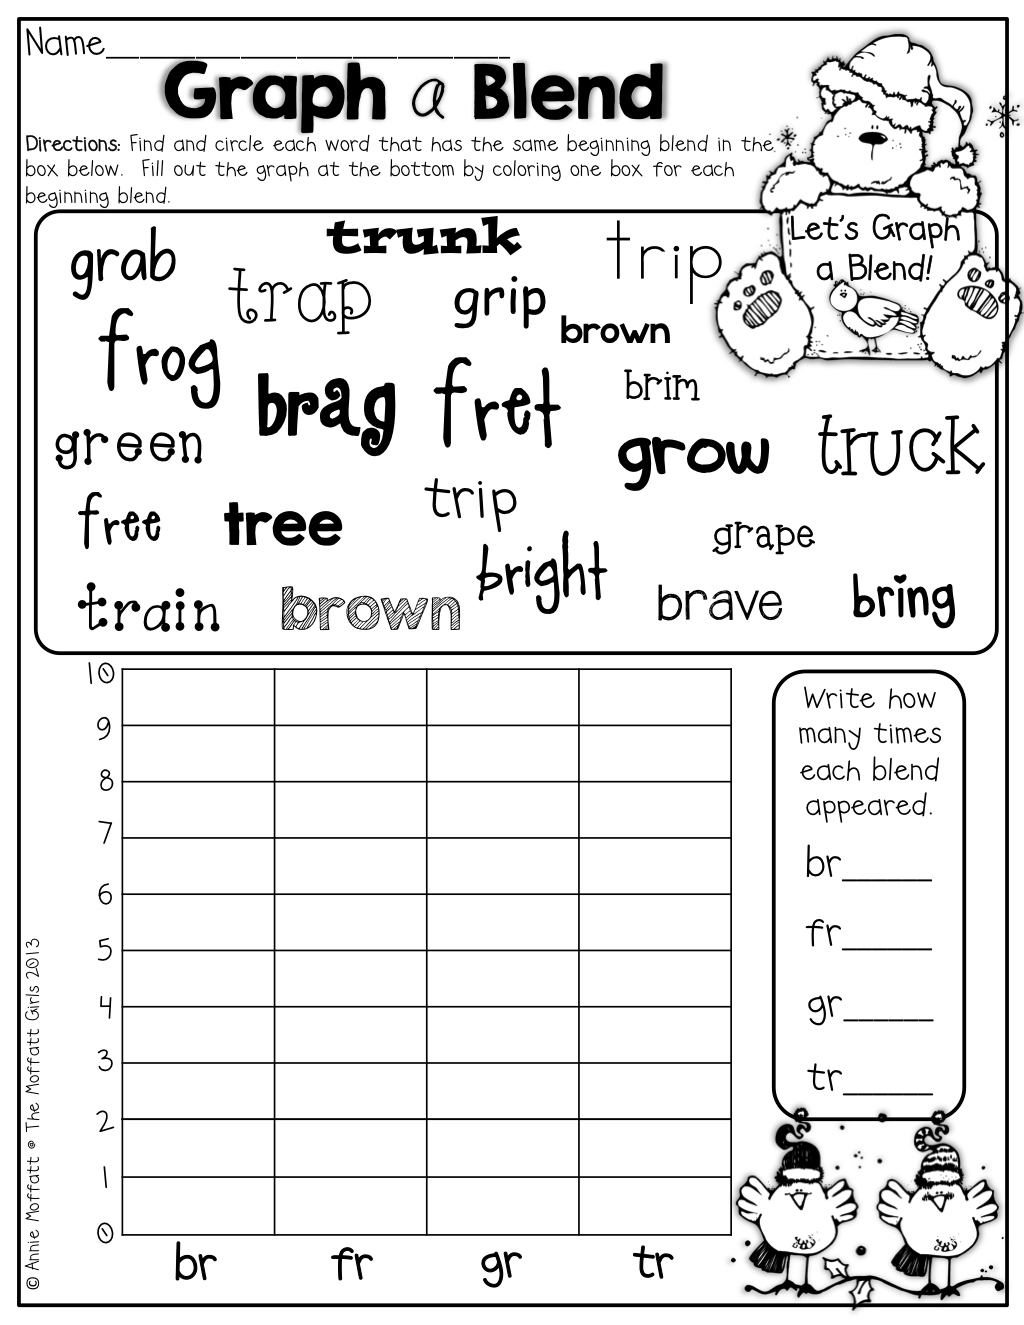 Graph A Blend The Different Fonts Are Great For Helping Students